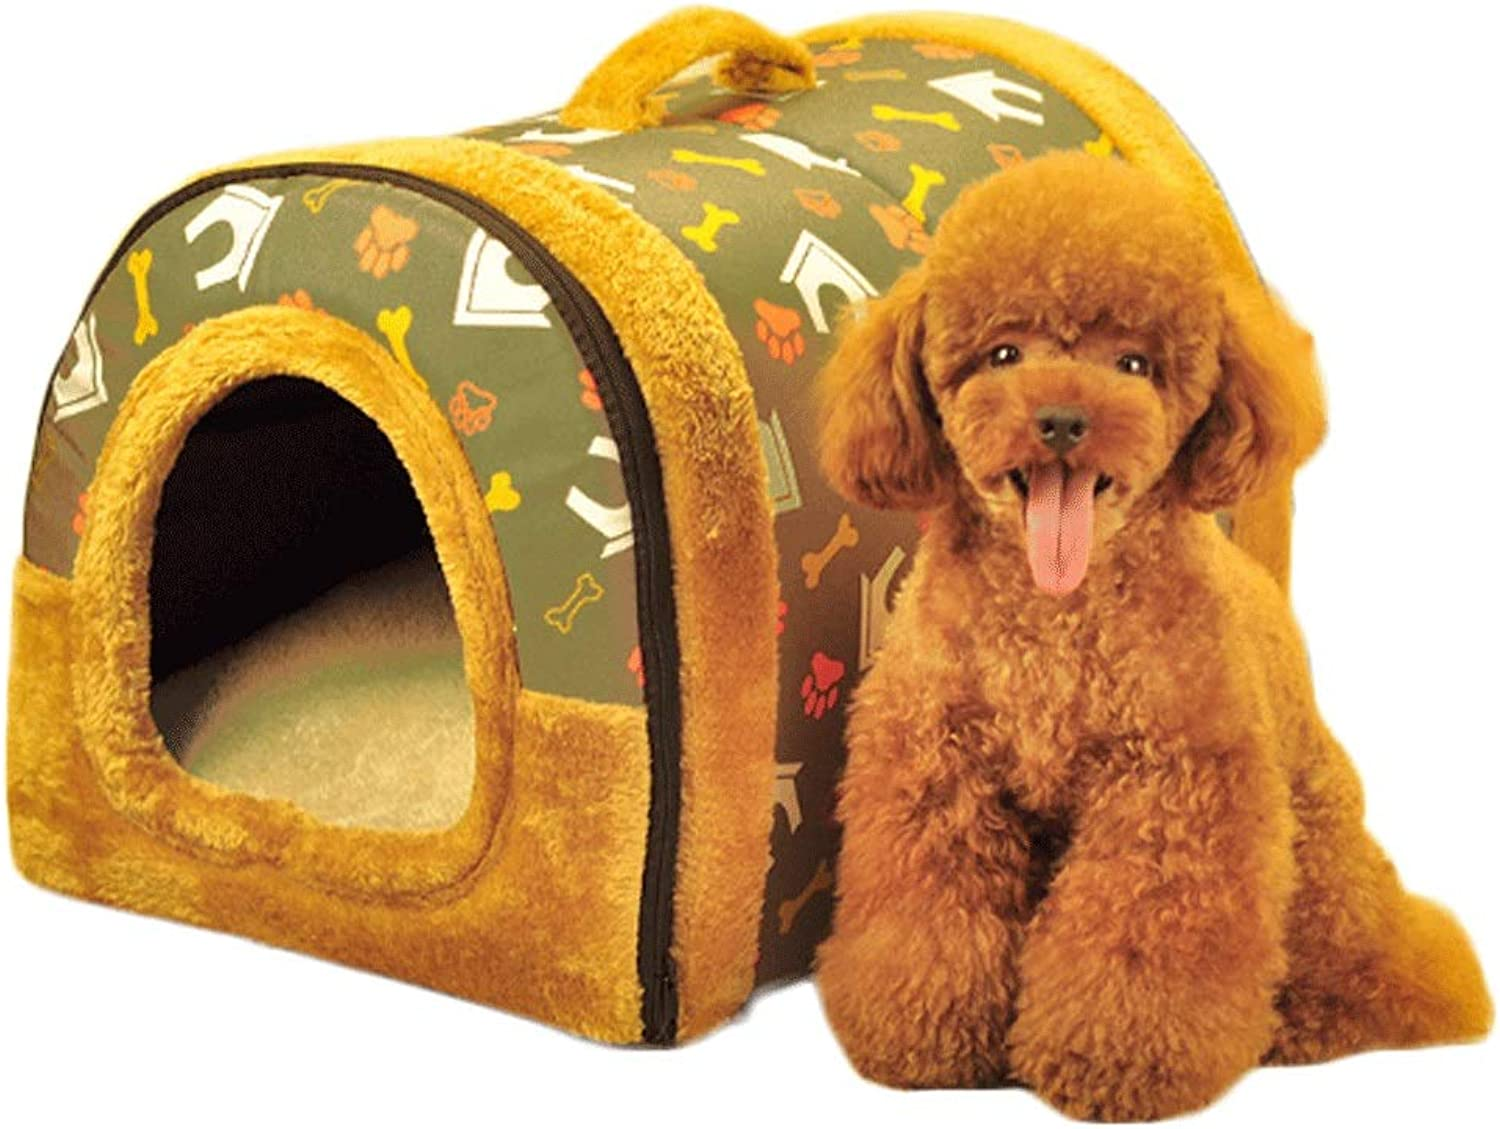 Pet Nest Kennel Removable and Washable Four Seasons Universal Dog House Bed Cat Litter Dual Purpose